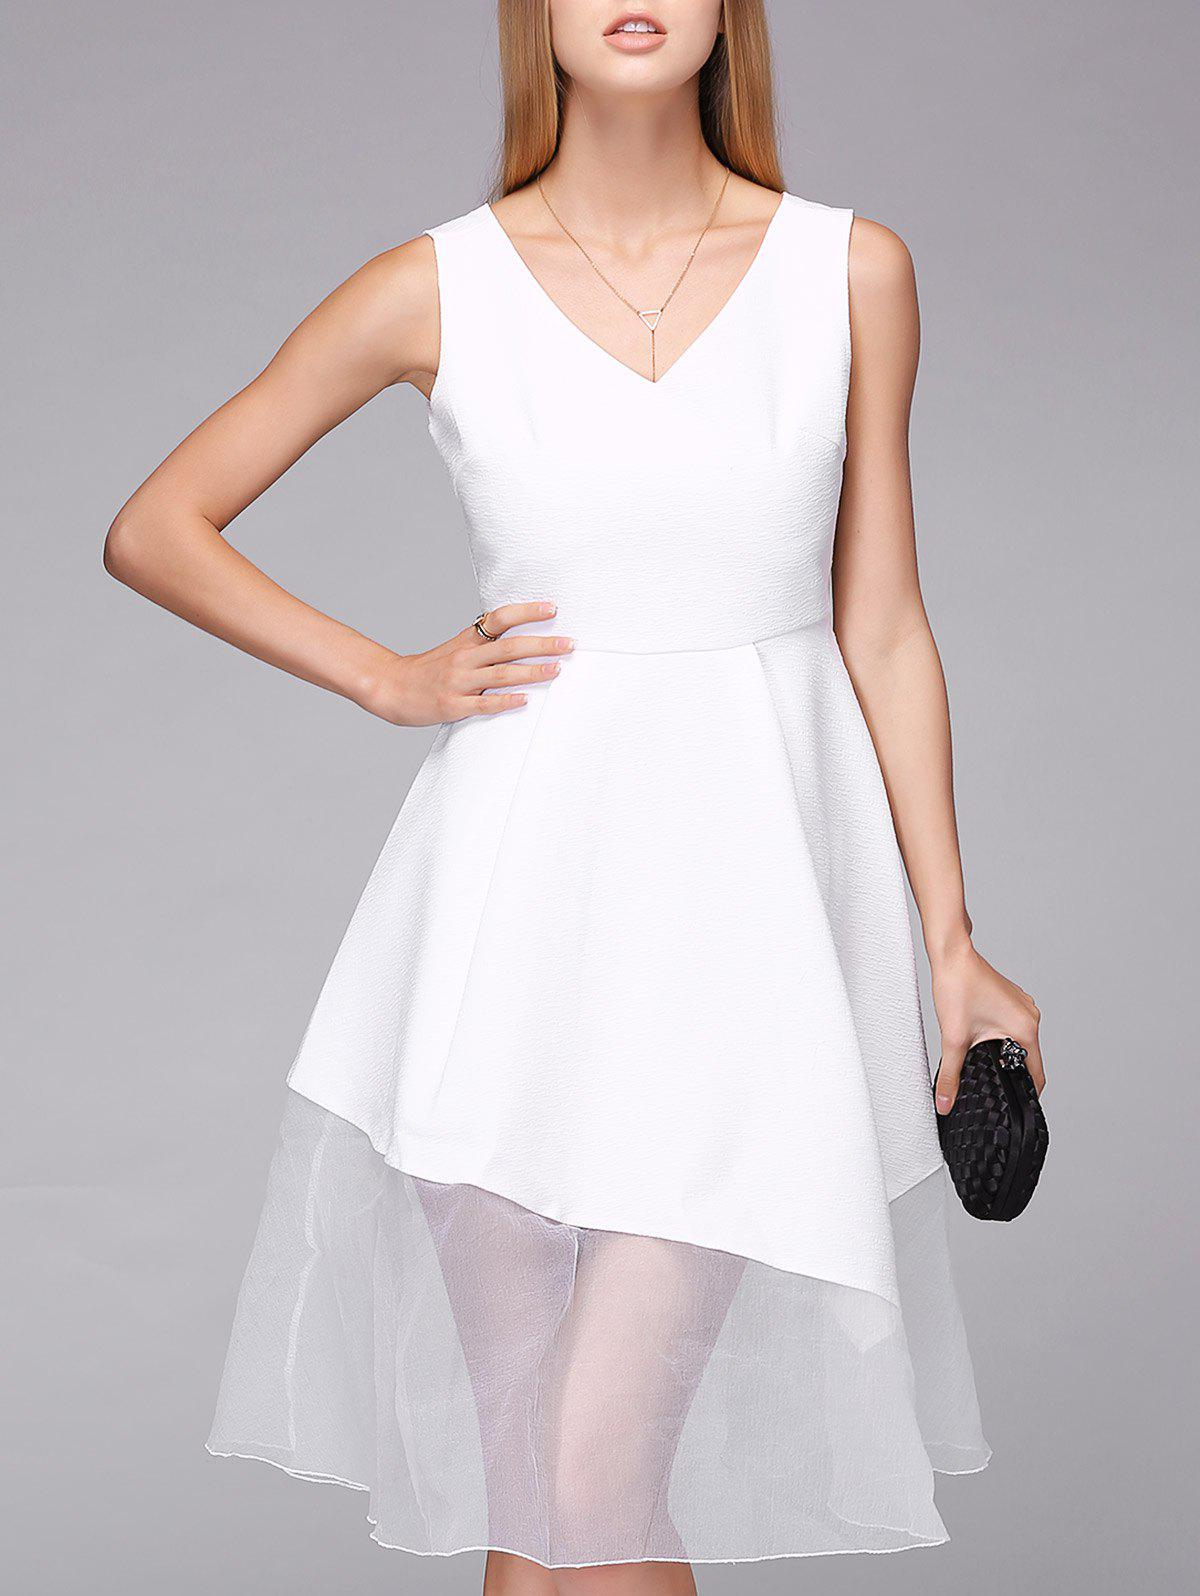 Elegant Women's White V-Neck Lace Splicing High Waist Dress